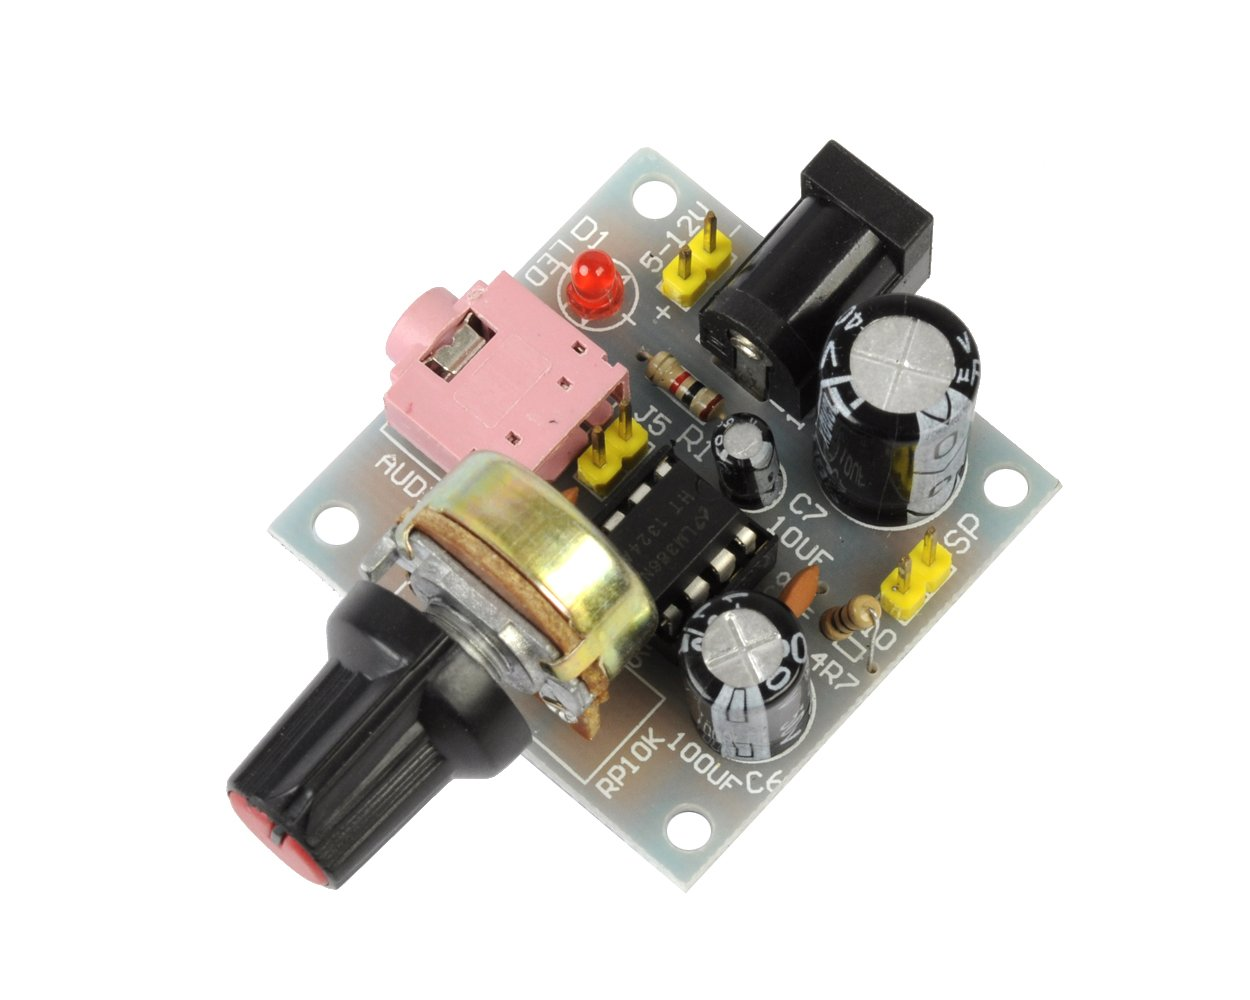 Icstation Mini Lm386 Audio Amplifier Power Amp Speaker Stereo Circuit Driver Module Dc 5v To 12v Input Industrial Scientific